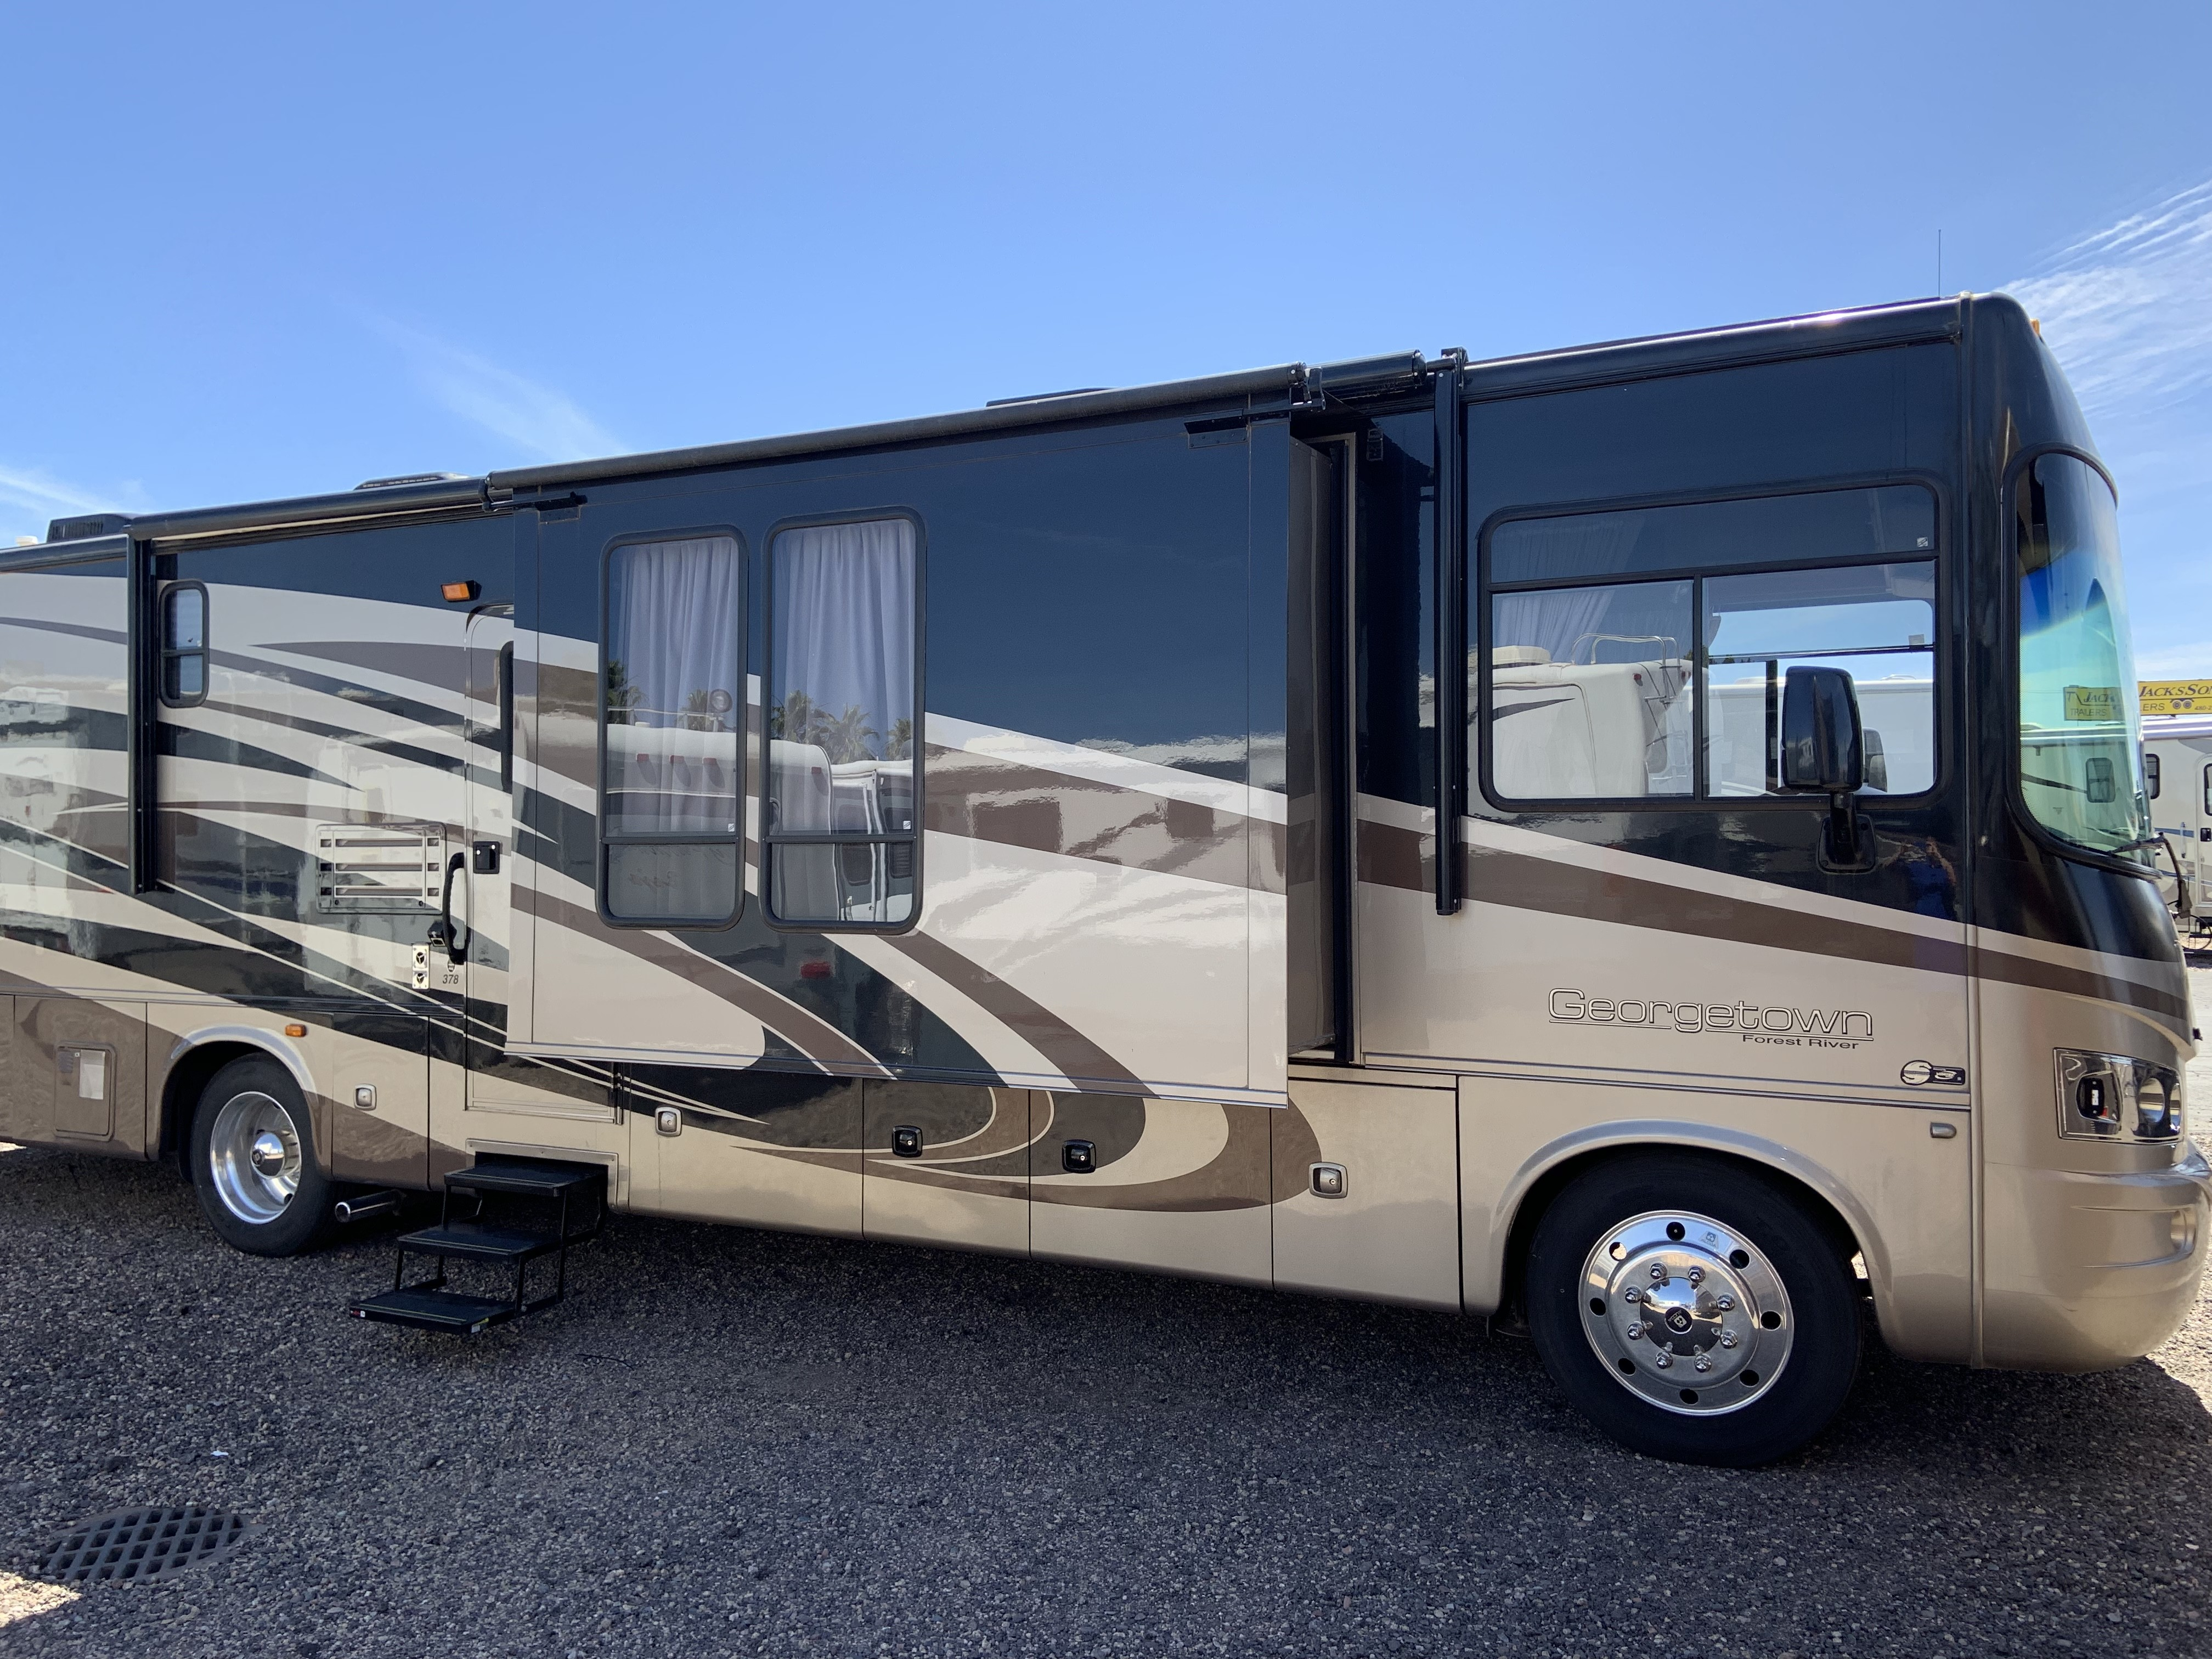 Used, 2011, Forest River, Georgetown 378TS, RV - Class A